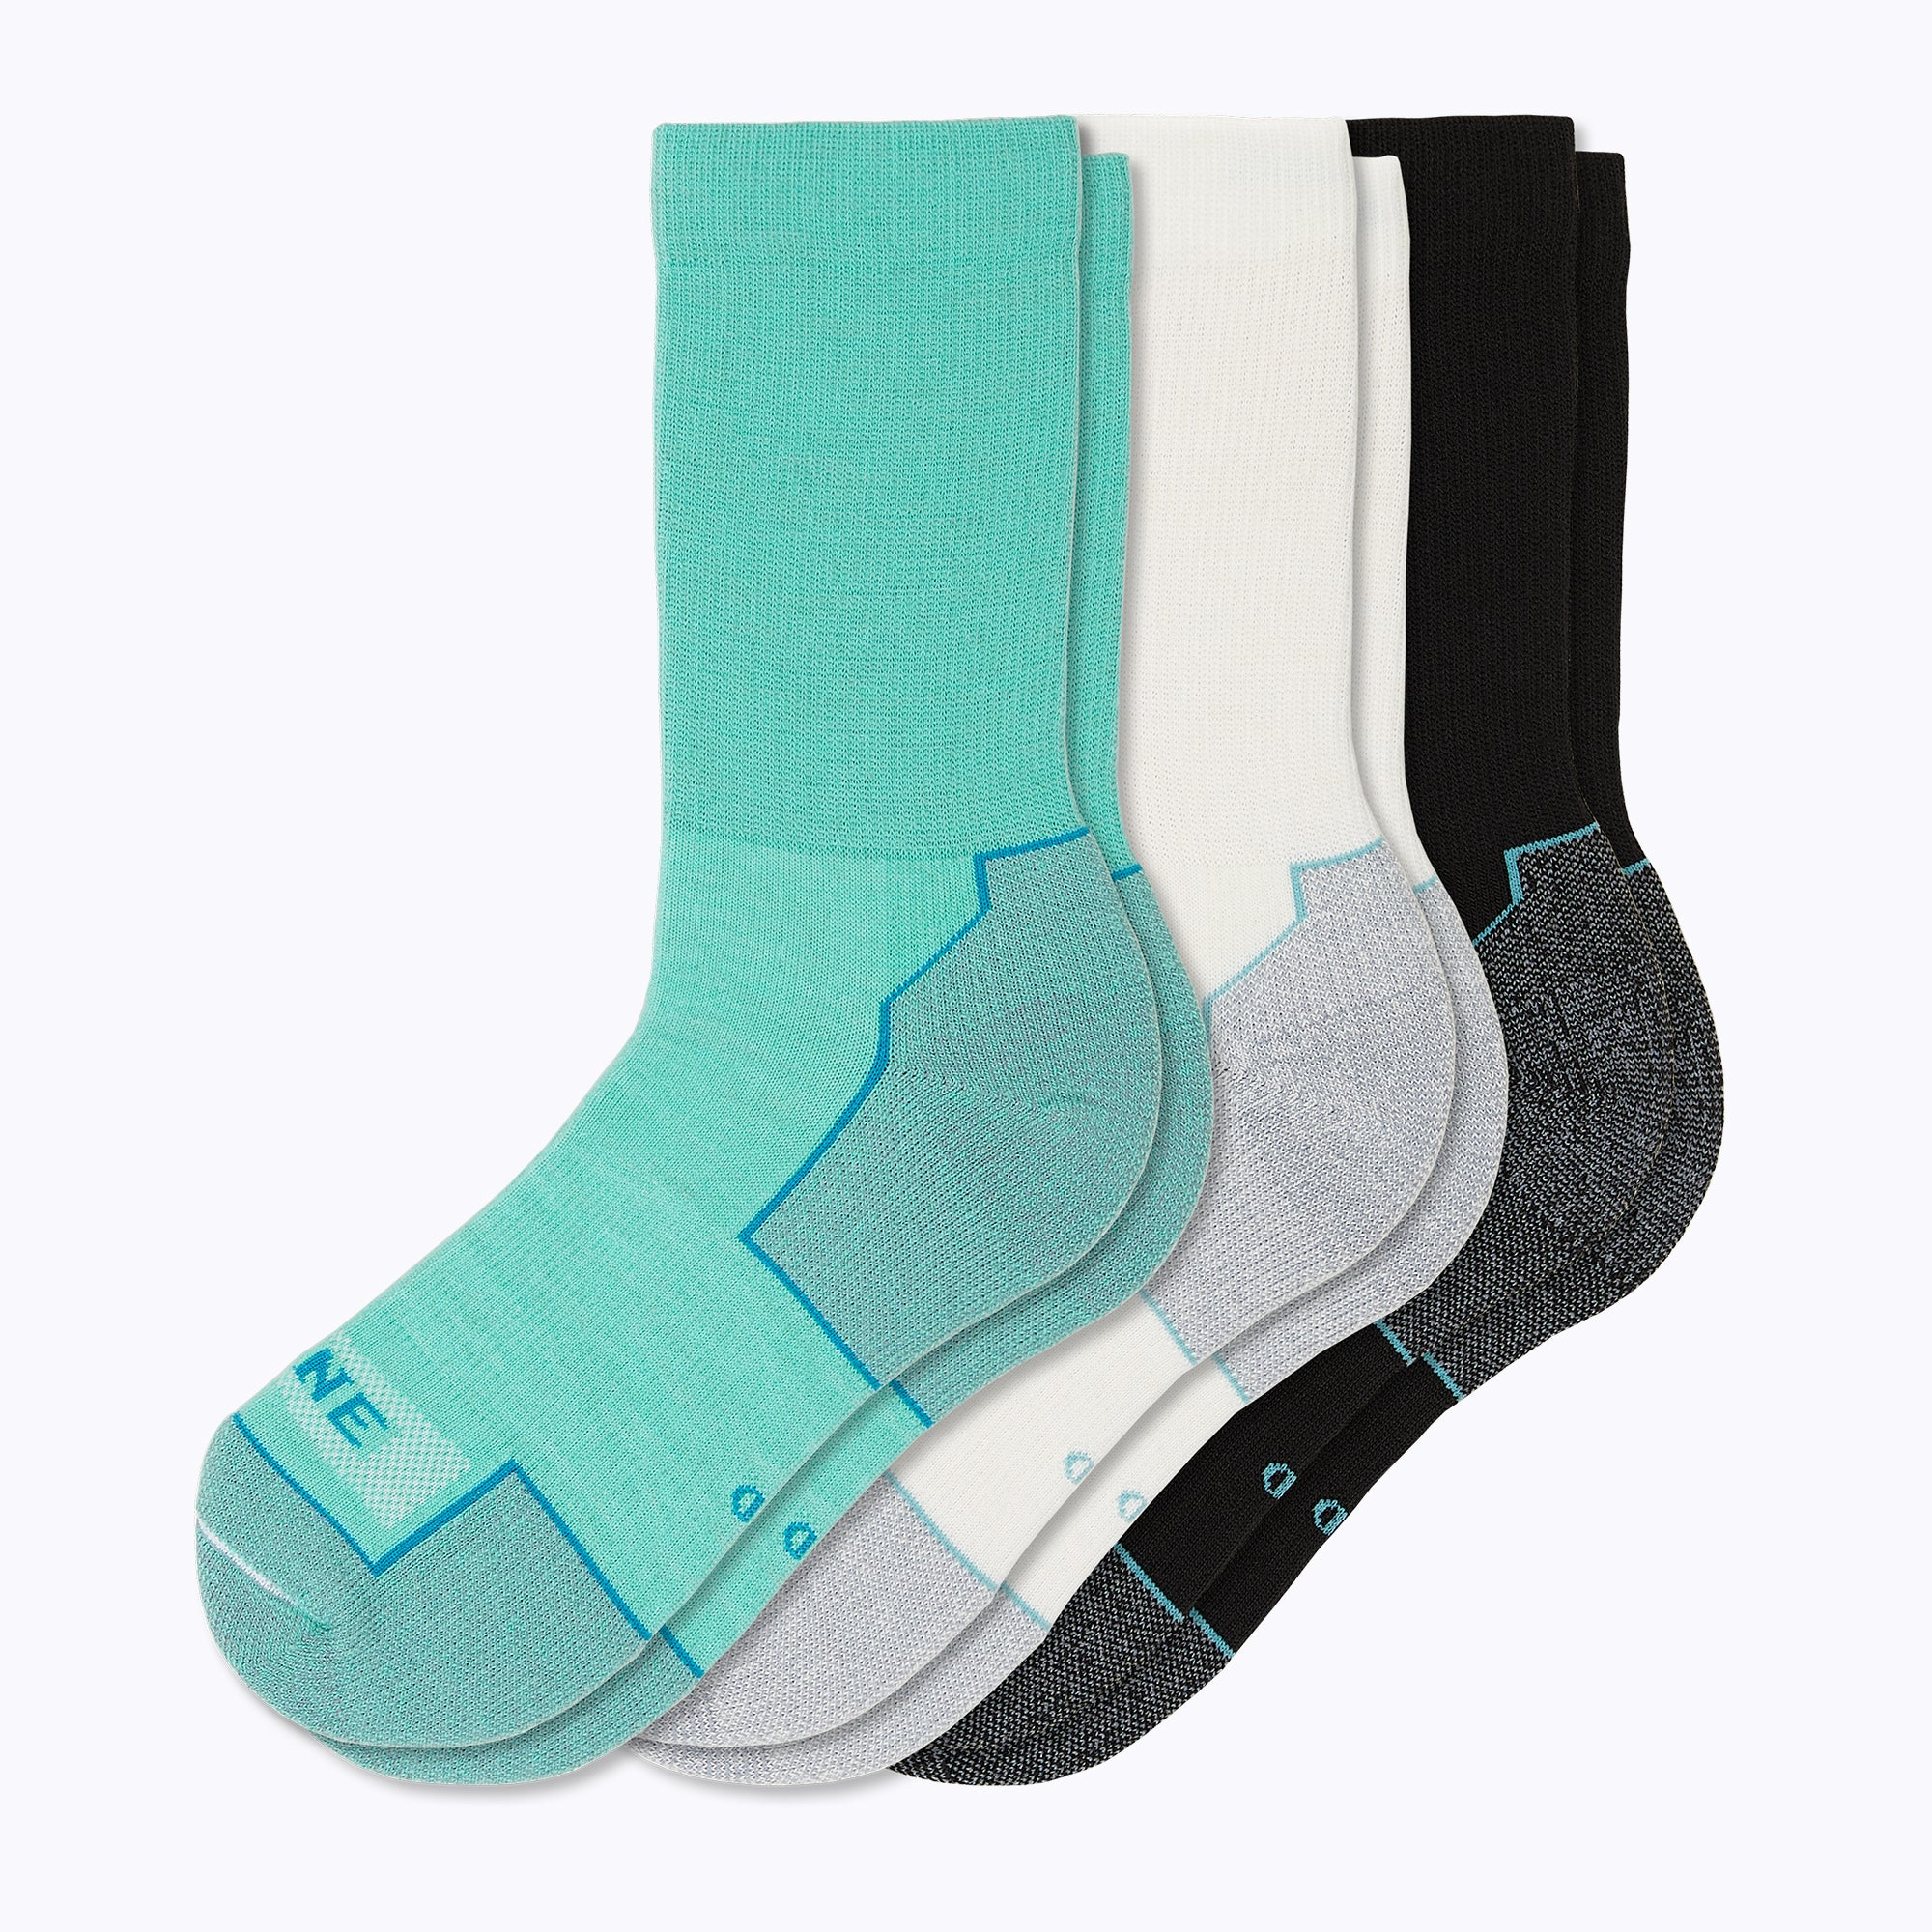 Everyday 3 Pack Mix Women's Crew Socks - Mix by Canyon x Lane Socks